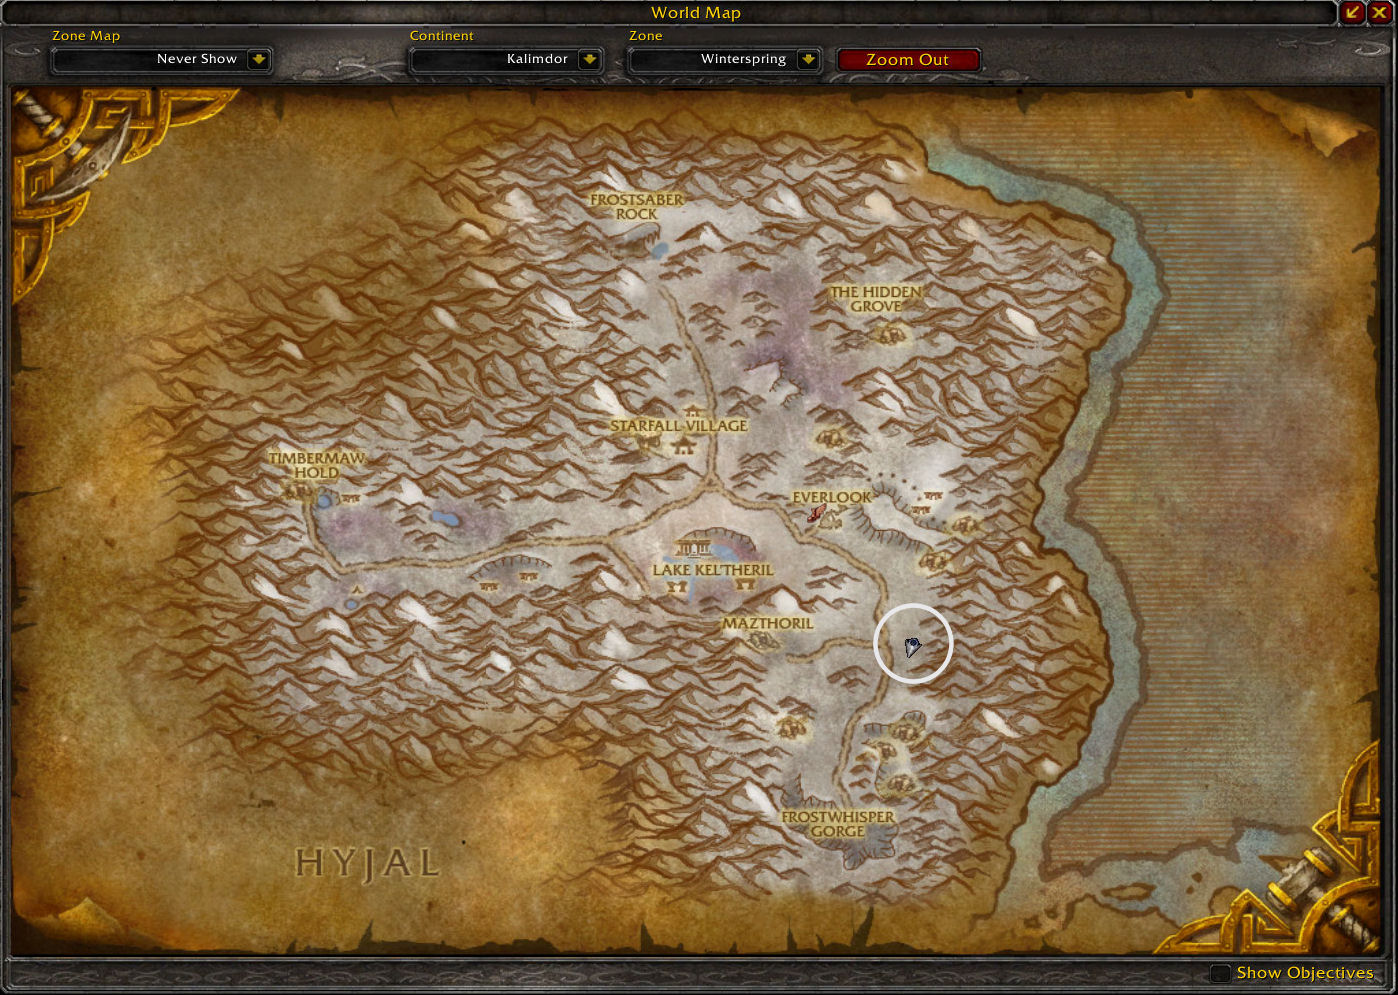 Warcraft Pet Tricks: Kalimdor Battle Pet Tamers Locations on draenor map, wow fossil dig sites map, azeroth map, stormwind map, orgrimmar map, guild wars 2 gendarran fields map, lordaeron map, molten core map, desolace map, dragonblight map, darkshore map, bloodmyst isle map, thousand needles map, eastern kingdoms map, ashenvale map, wrath of the lich king map, dustwallow marsh map, emerald dream map, undercity map, netherstorm map,